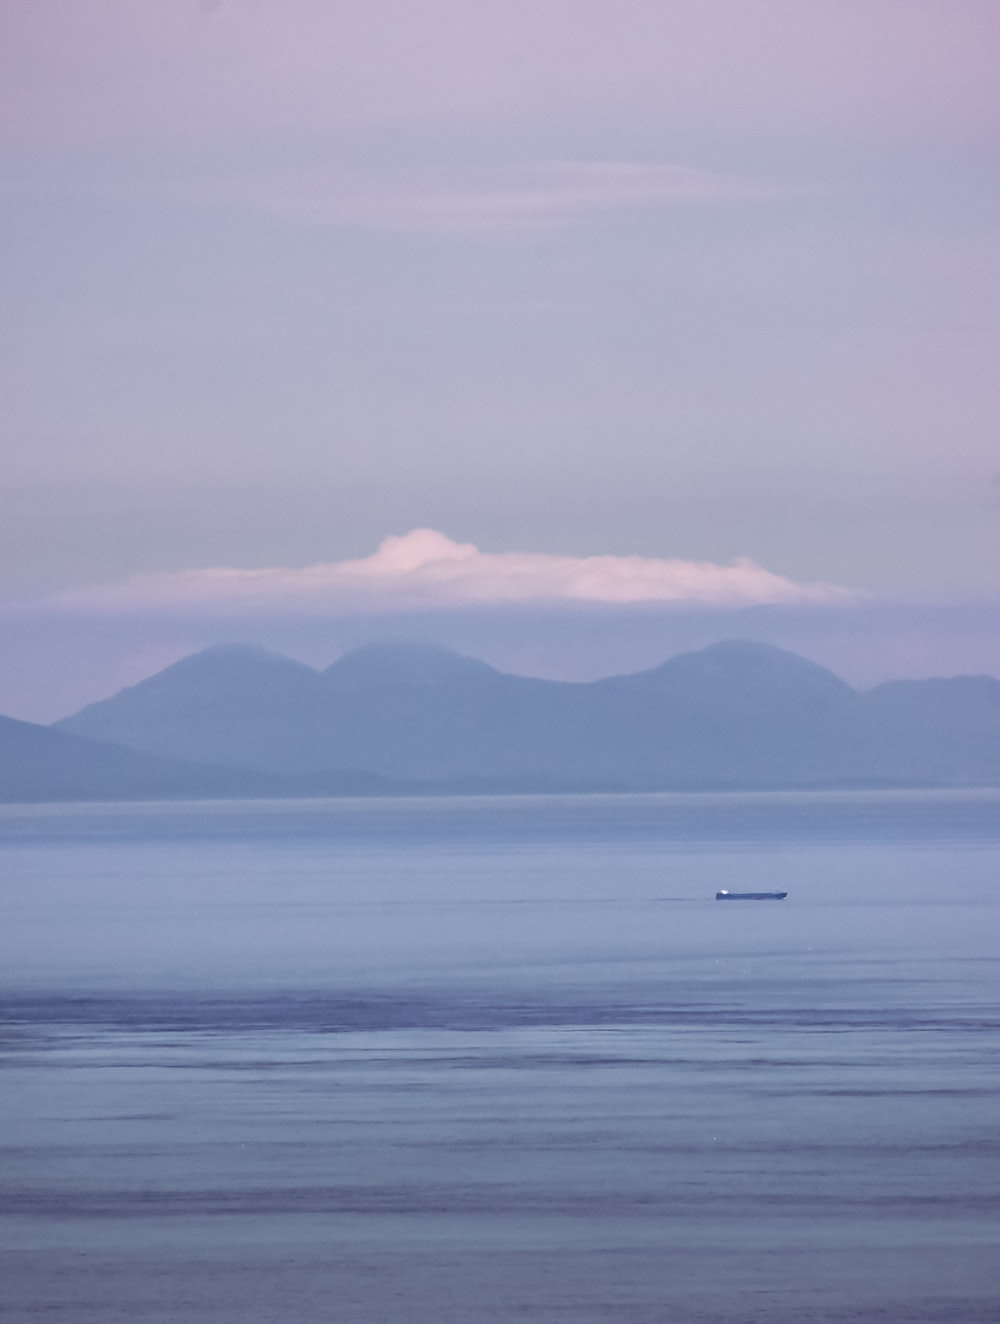 boat on sea near mountain during daytime